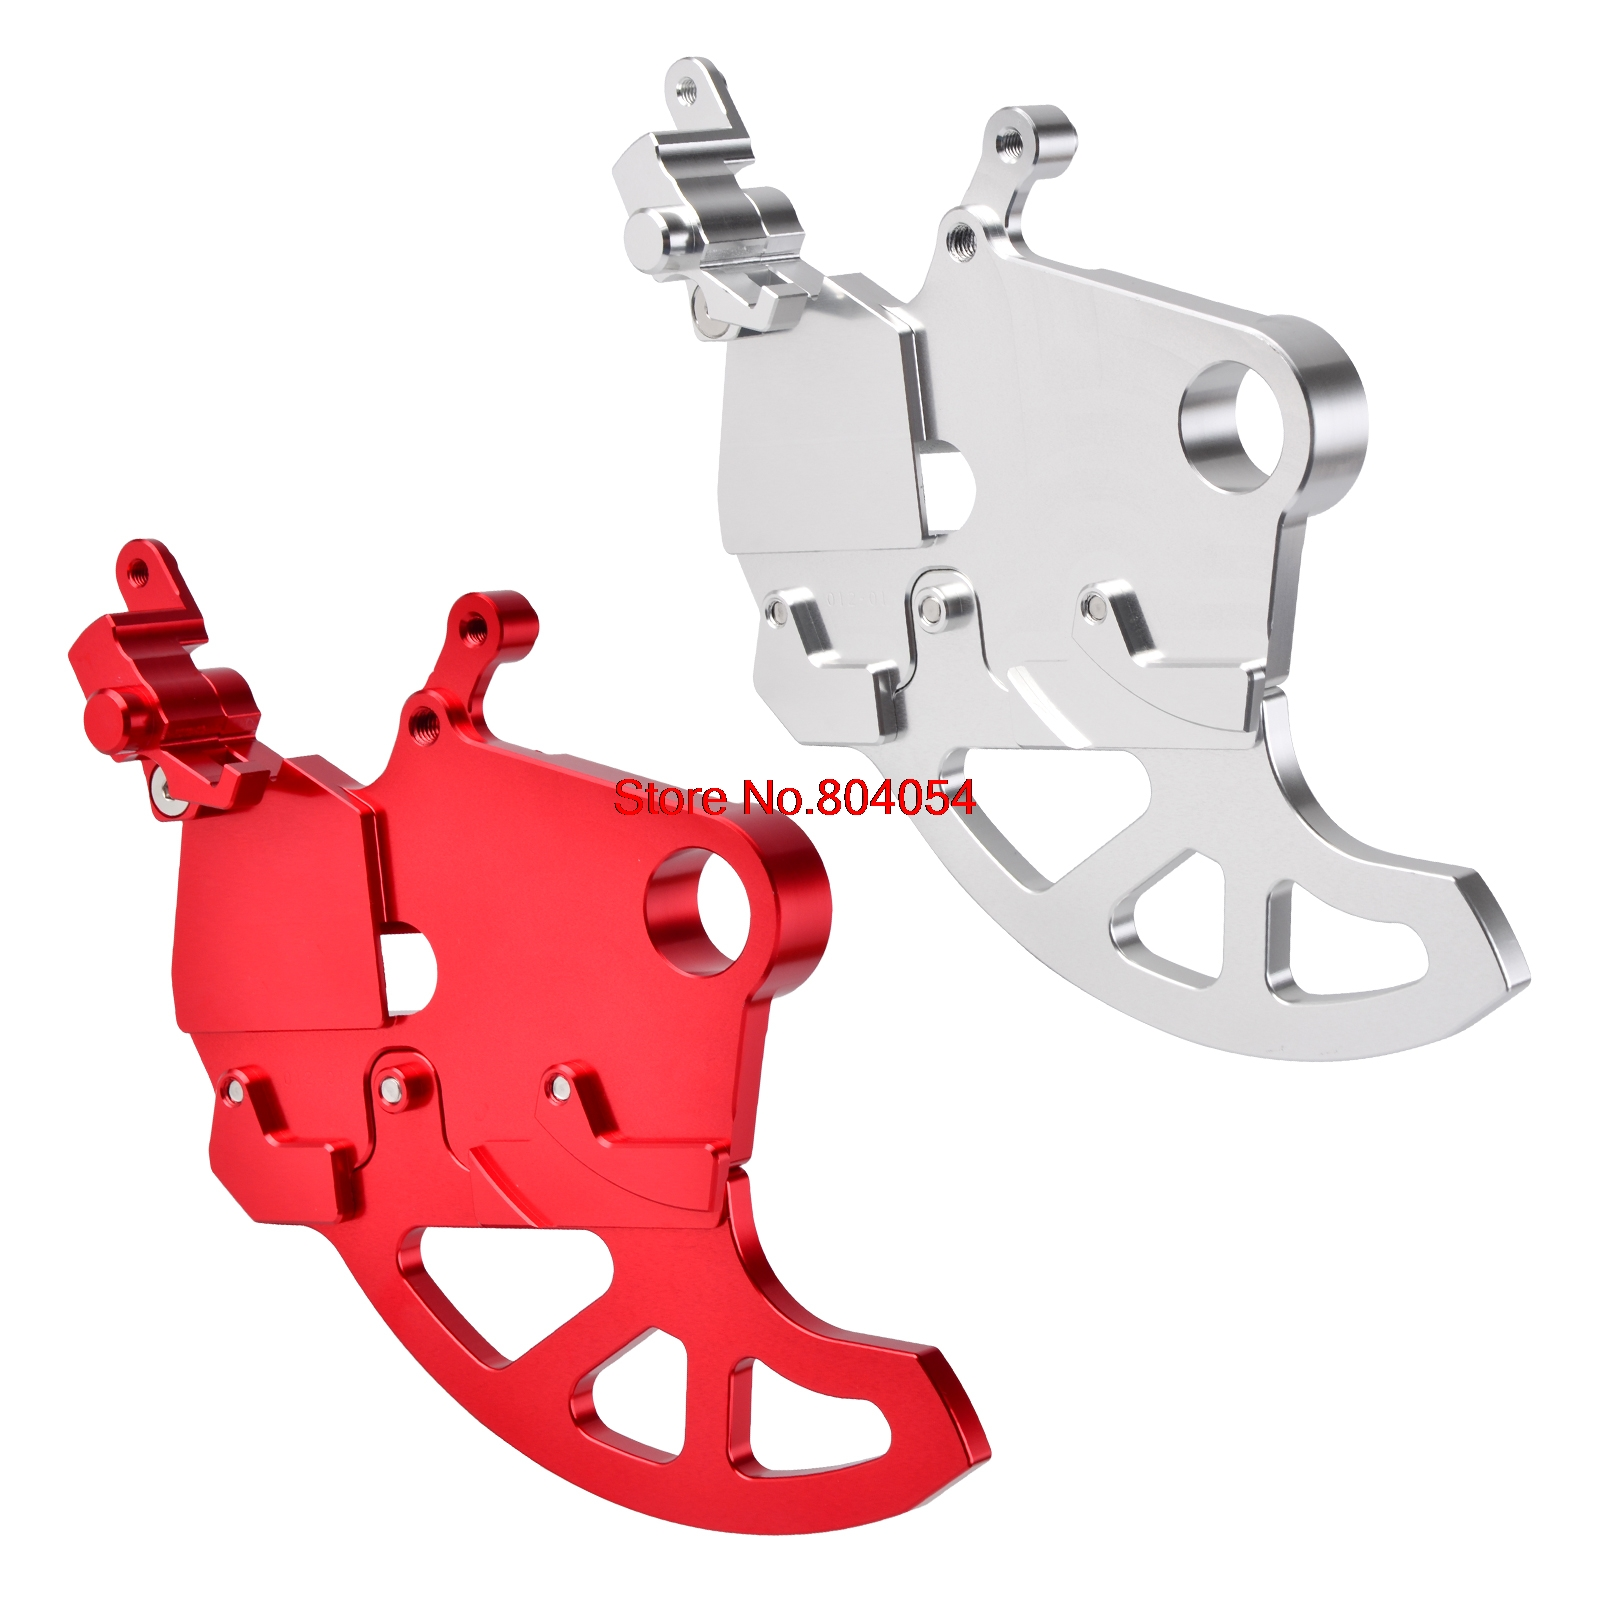 Motorcycle Rear Brake Disc Guard Protector For Honda CR125R CR250R CRF250R CRF250X CRF450R CRF450X CRF 250R 250X 450R 450X new arrival motorcycle cnc pivot brake clutch levers for honda crf 250 450 r crf250x crf 450r 450x xr230 motard off road